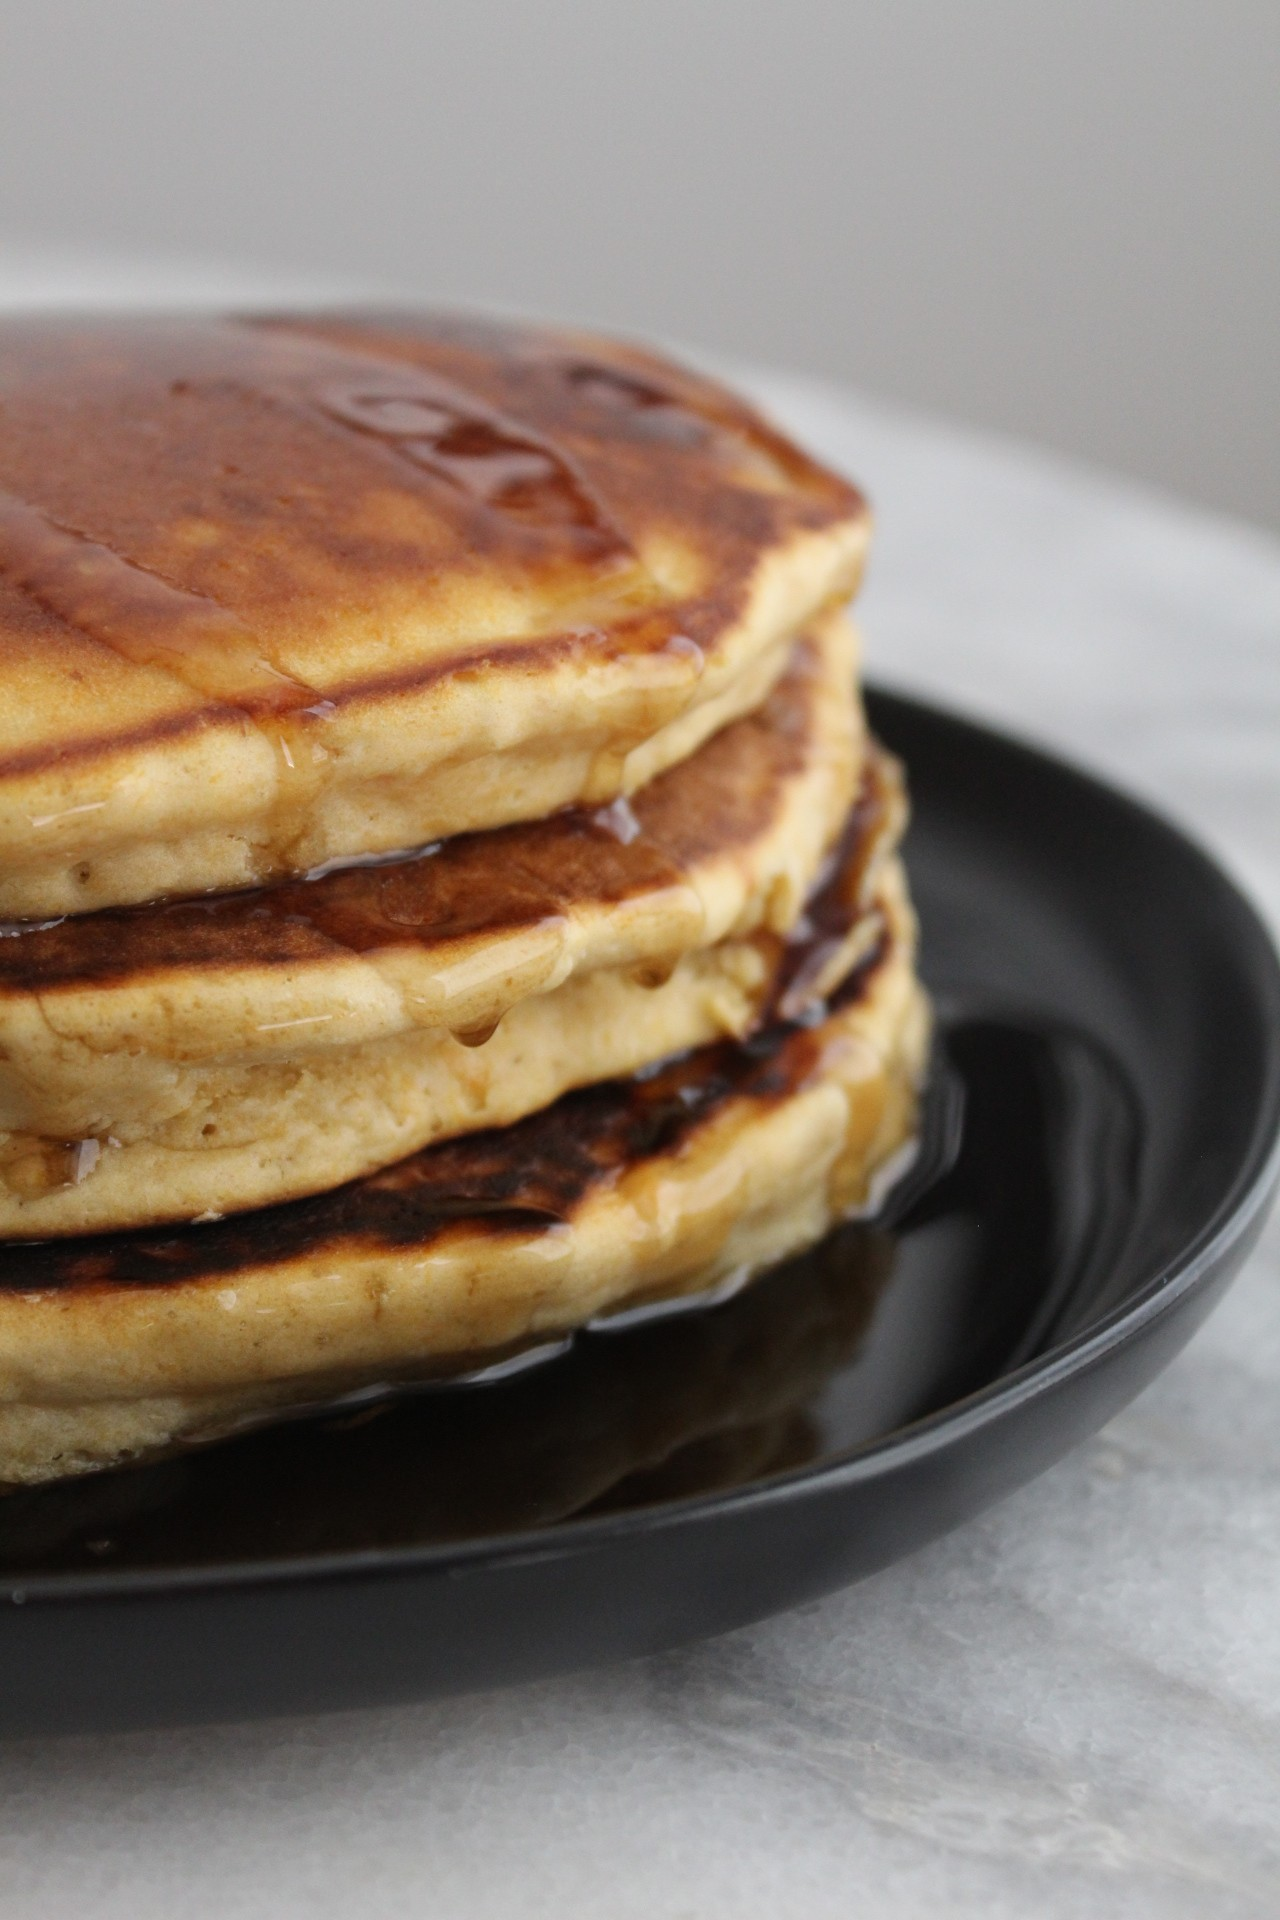 Fluffy Pancakes on Black Plate